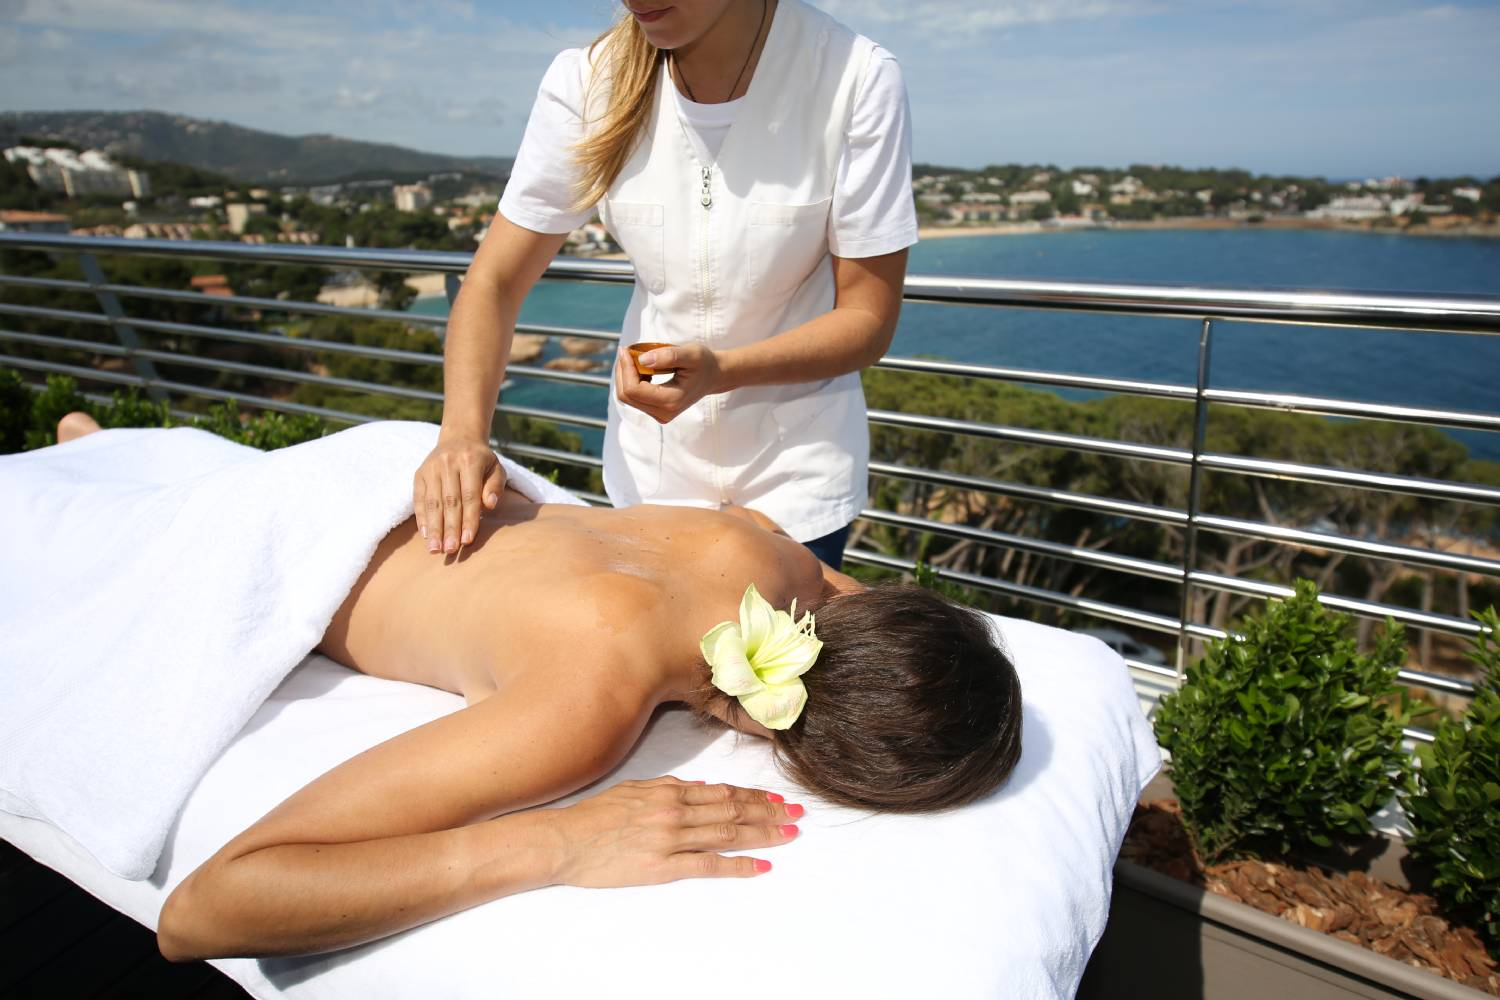 Foto: Alàbriga Hotel & Home Suites - Wellbeing SPA Treatment